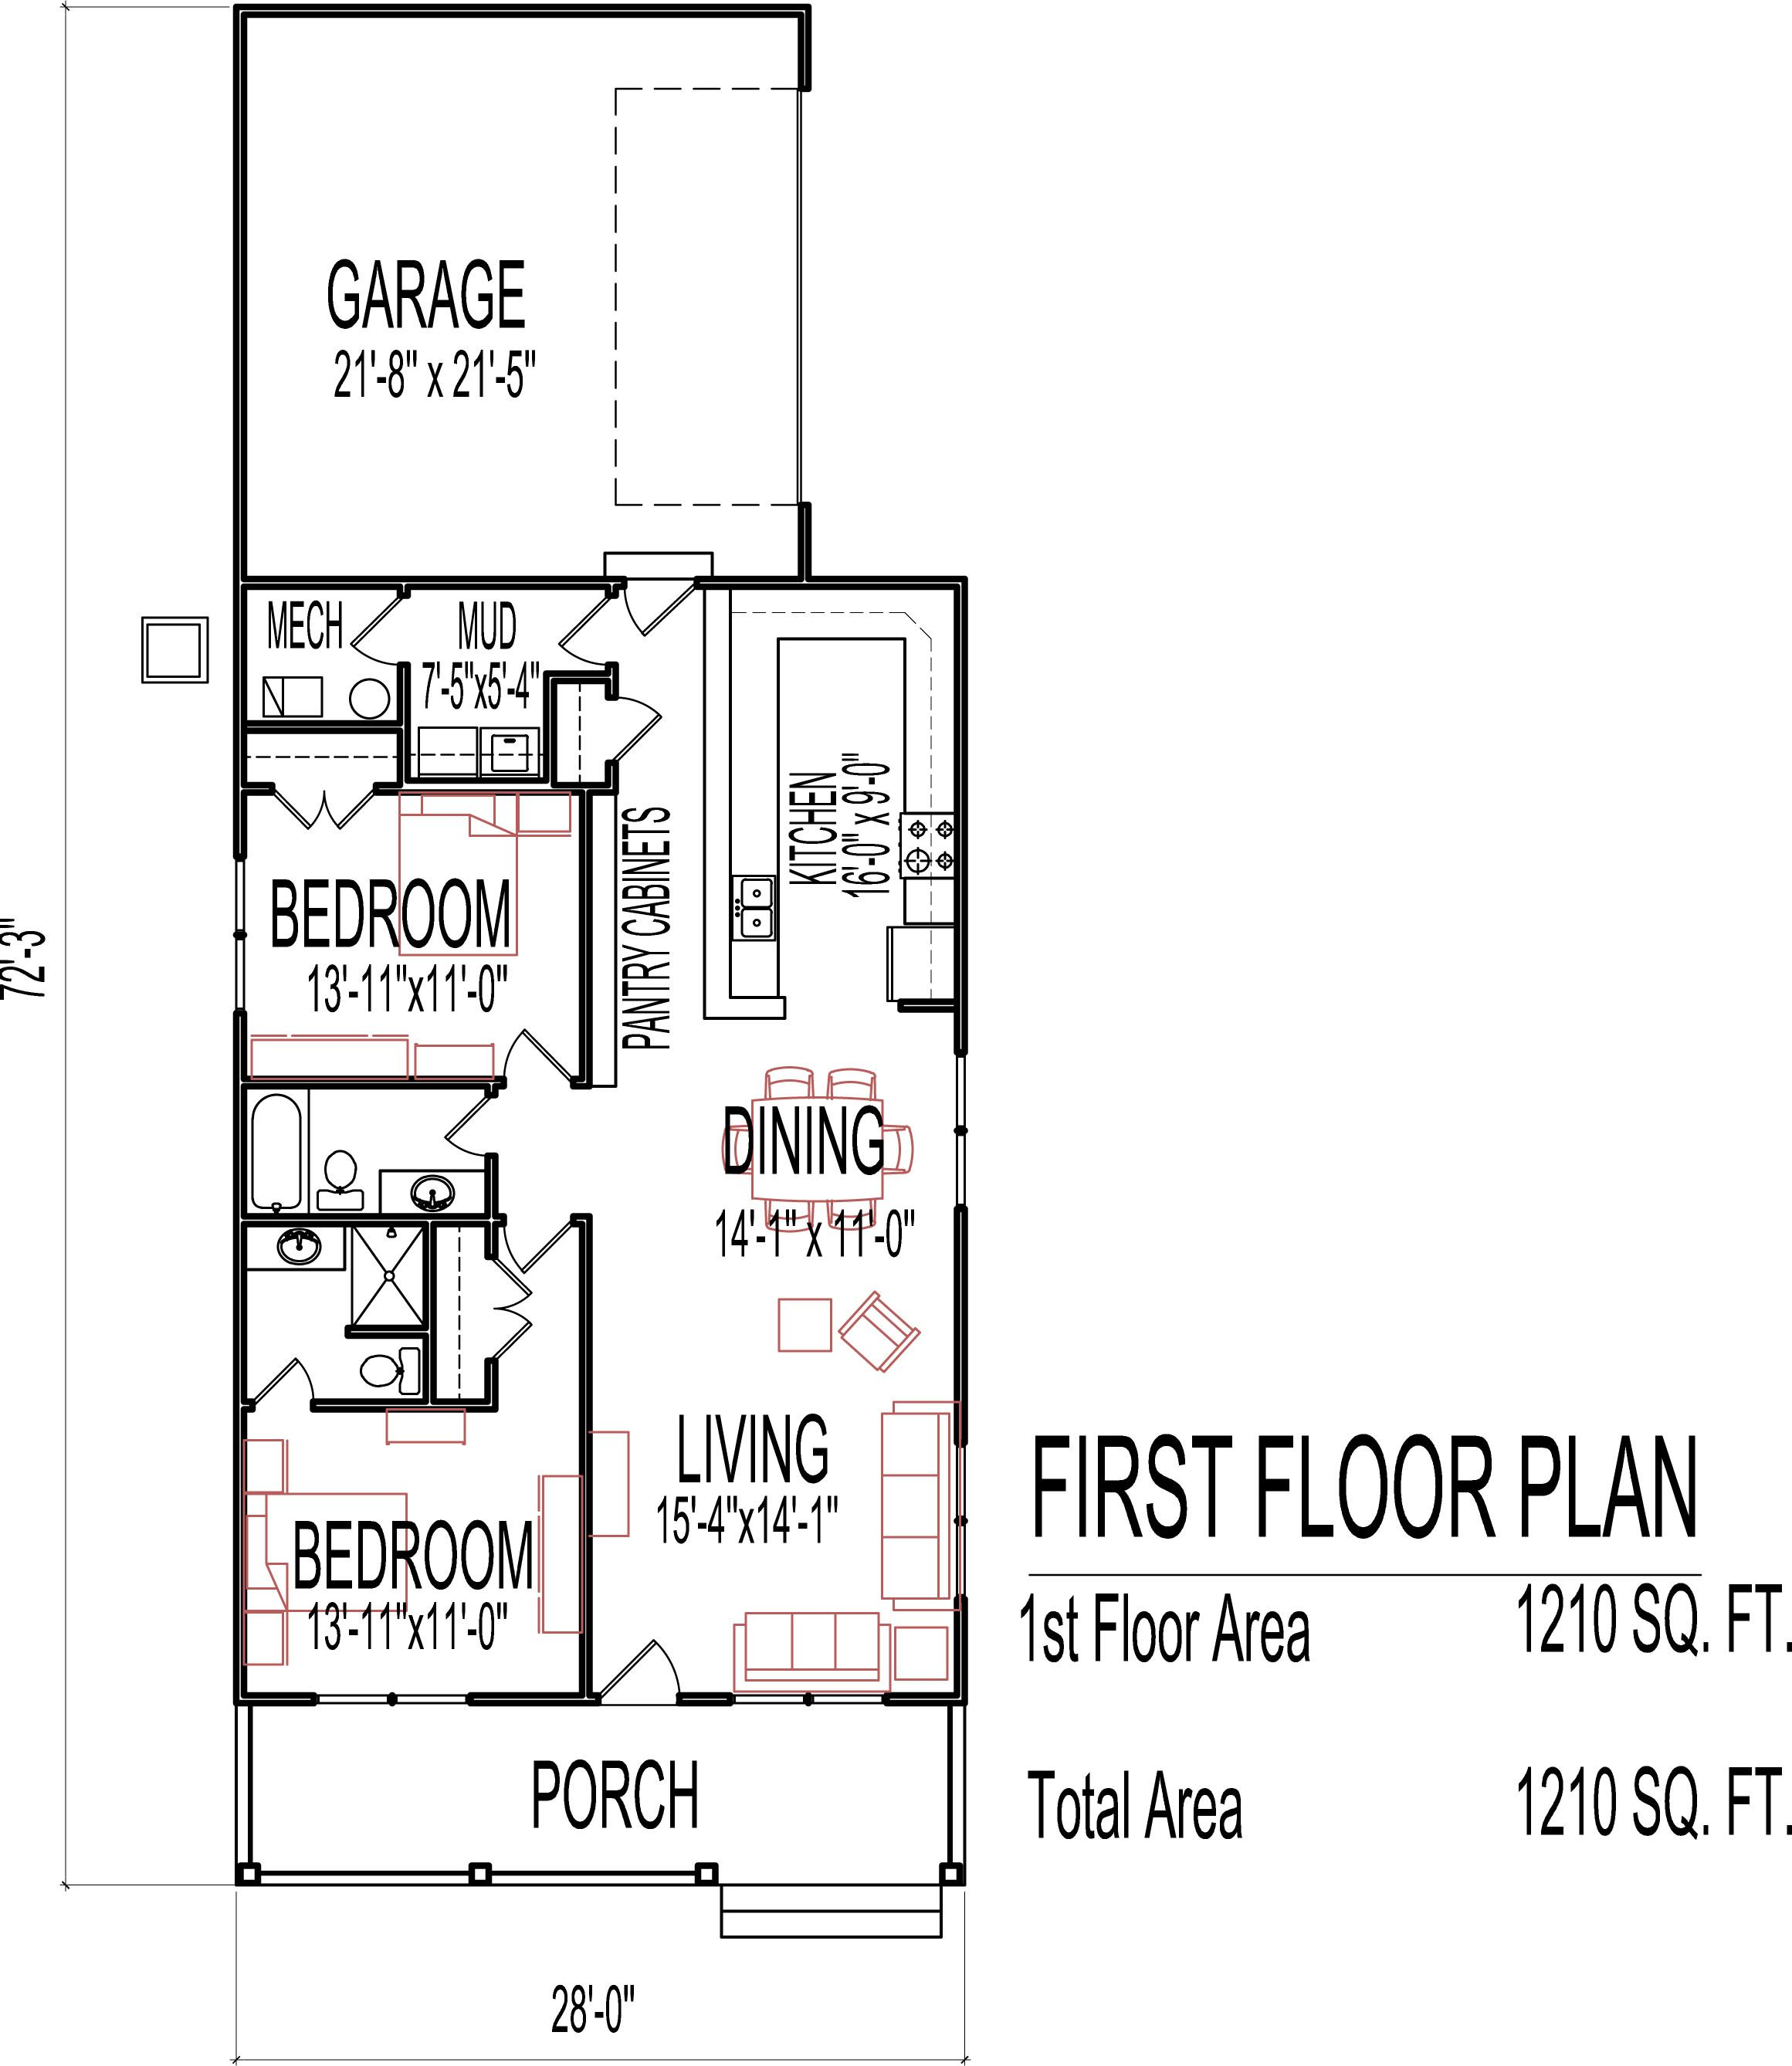 small low cost economical 2 bedroom 2 bath 1200 sq ft single story house floor plans - Small Homes Plans 2